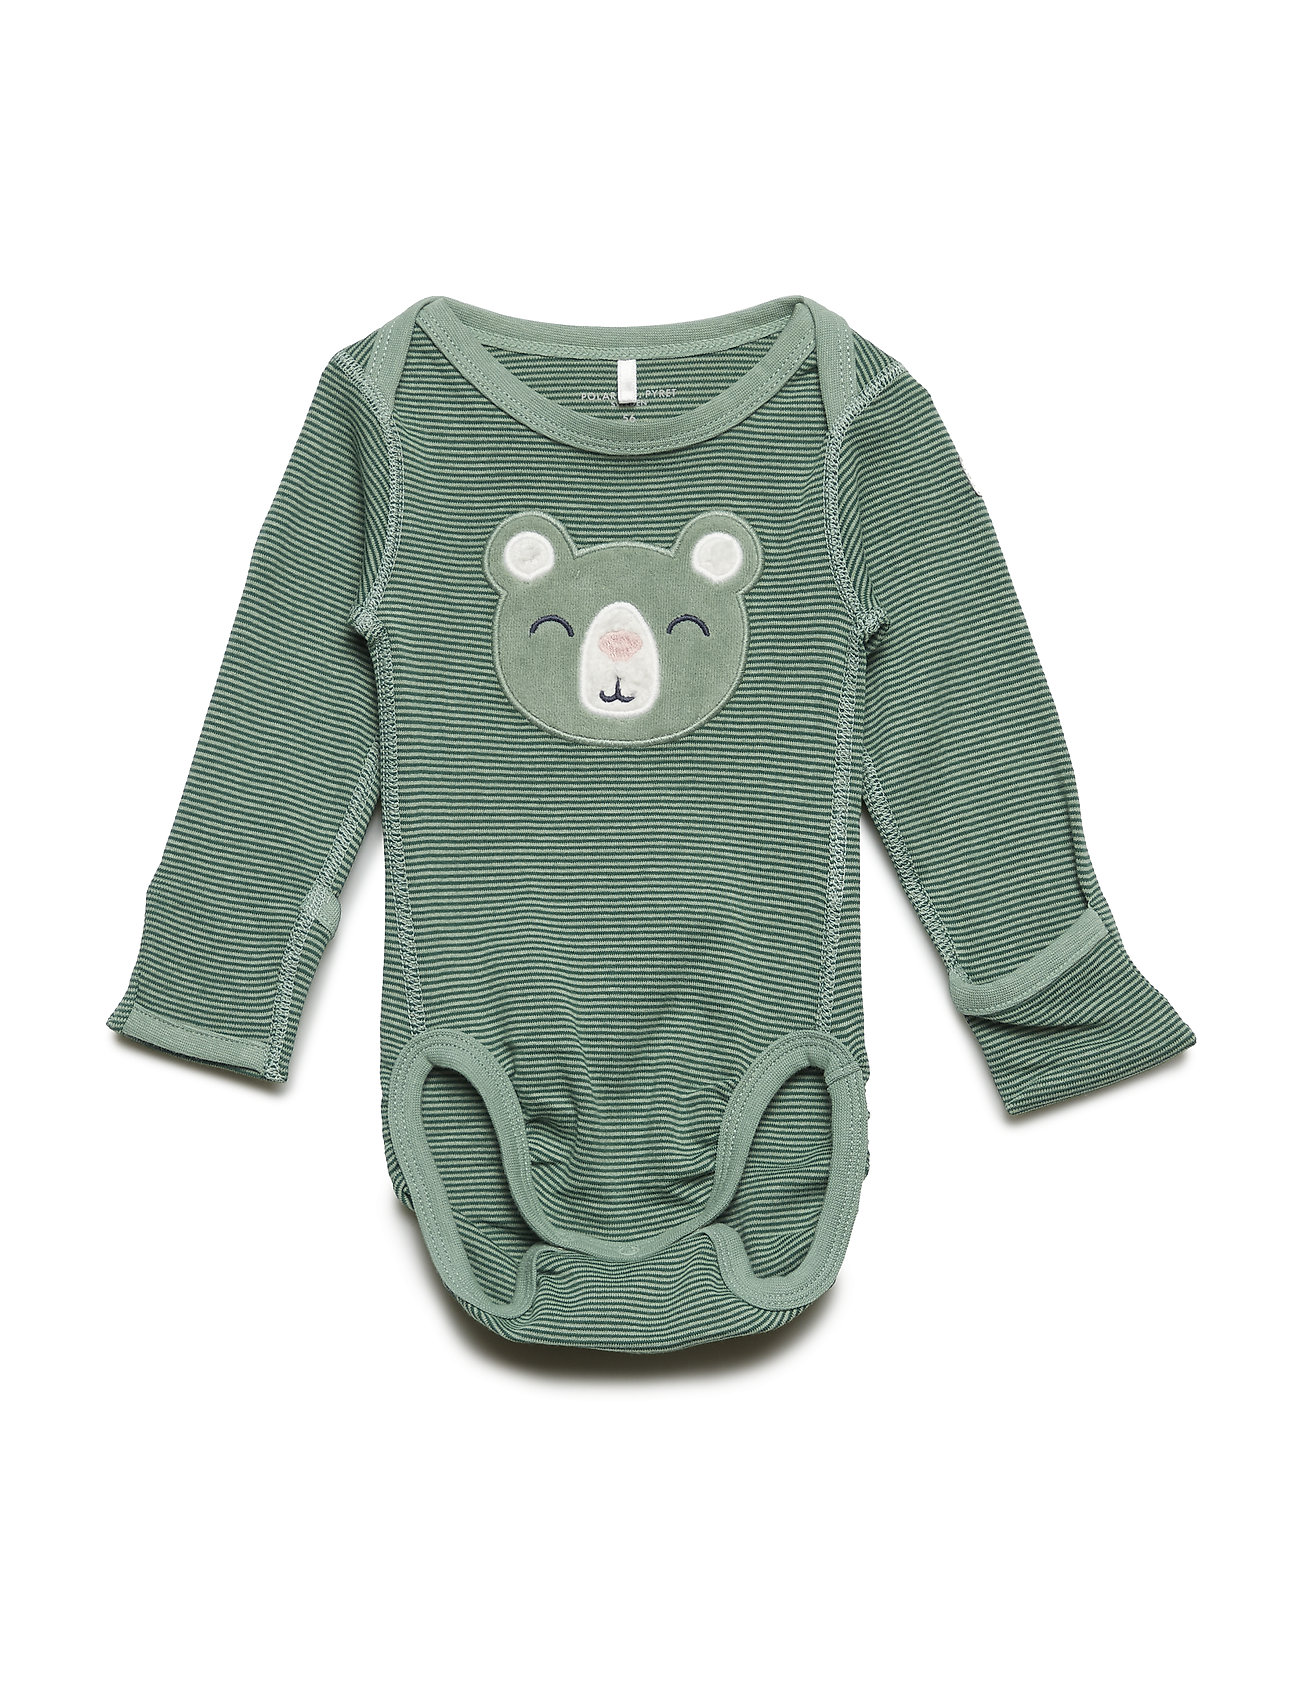 Billede af Body Applique Long Sleeve Newborn